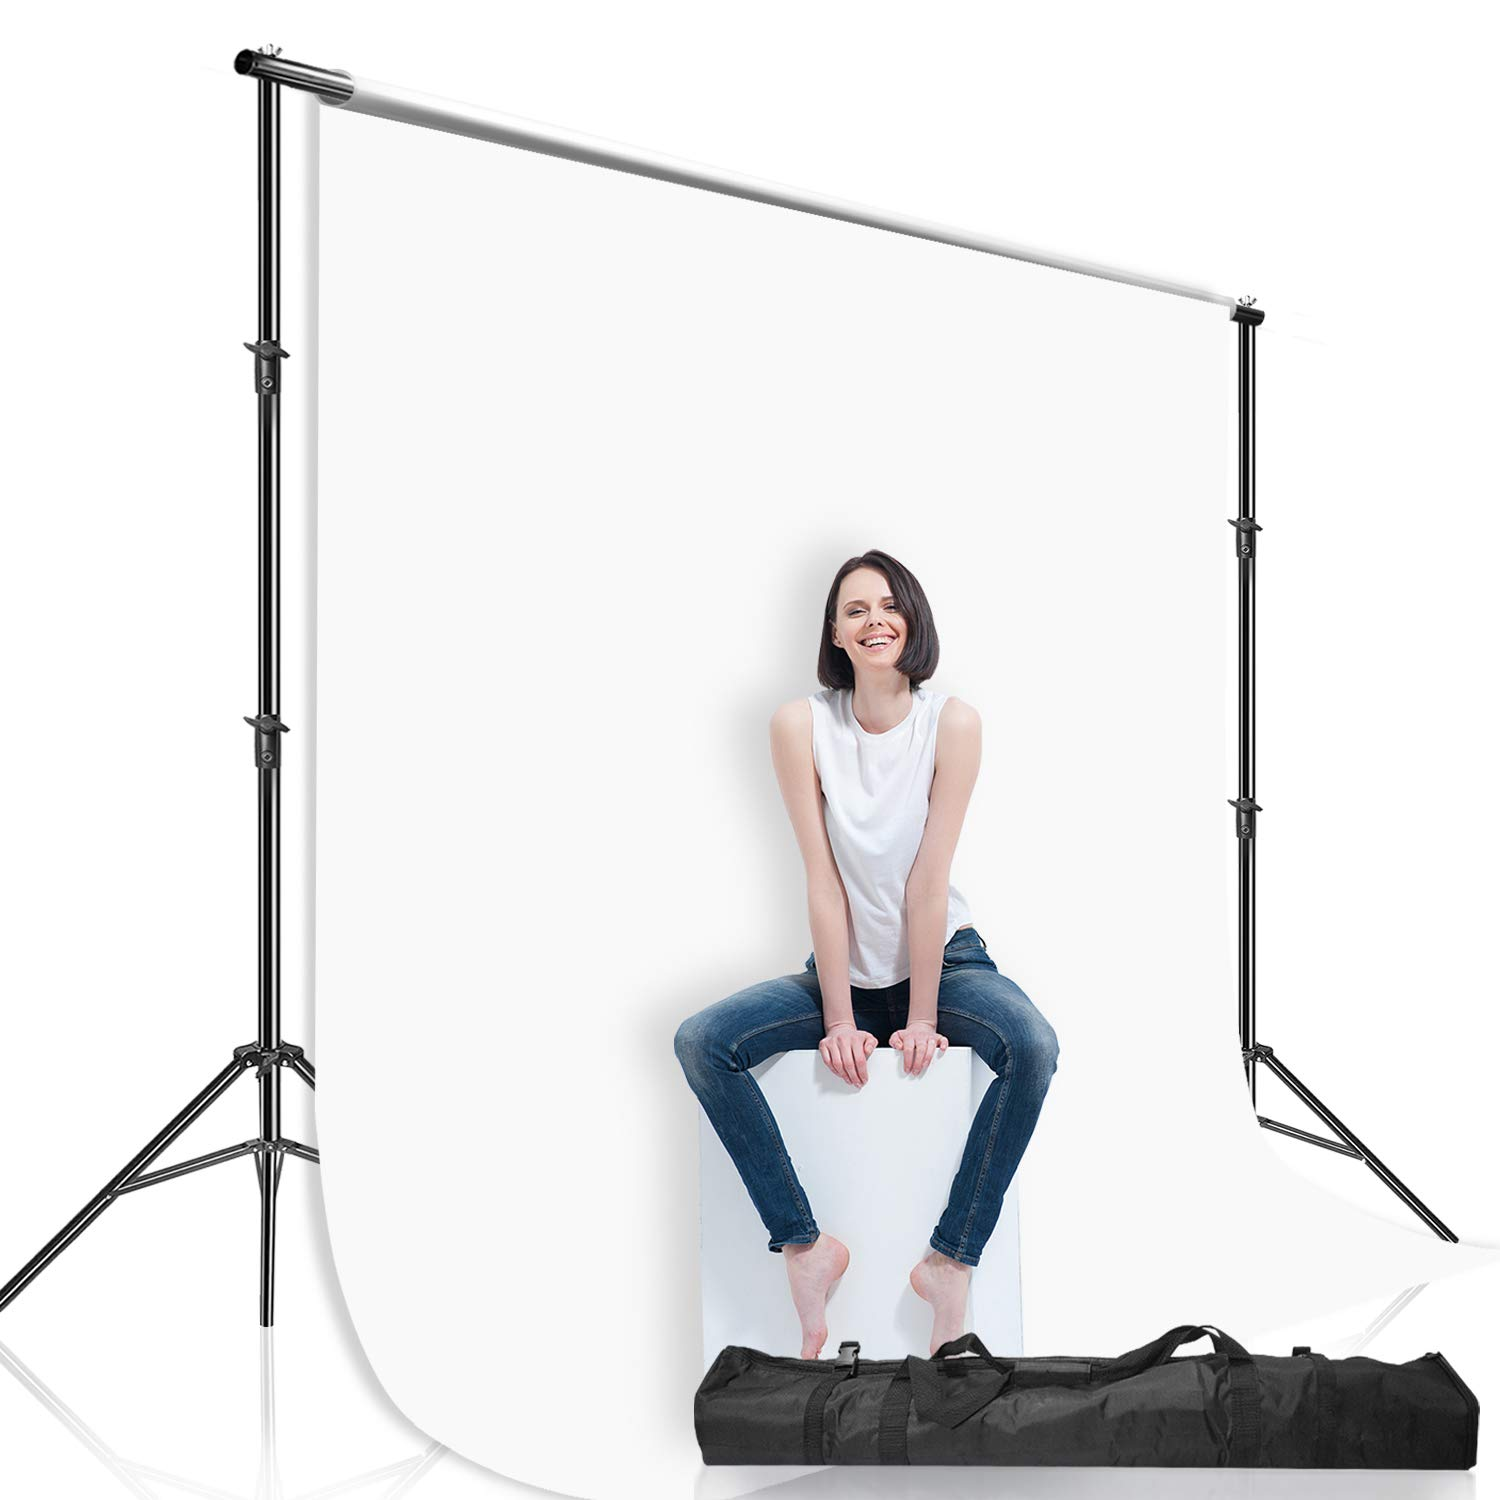 Julius Studio 10 ft Max Wide Adjustable Background Support Stand/Equipment Used in Photo Video Studio for Backdrops with, Muslins with Carry Bag, LNA1106 by Julius Studio (Image #2)